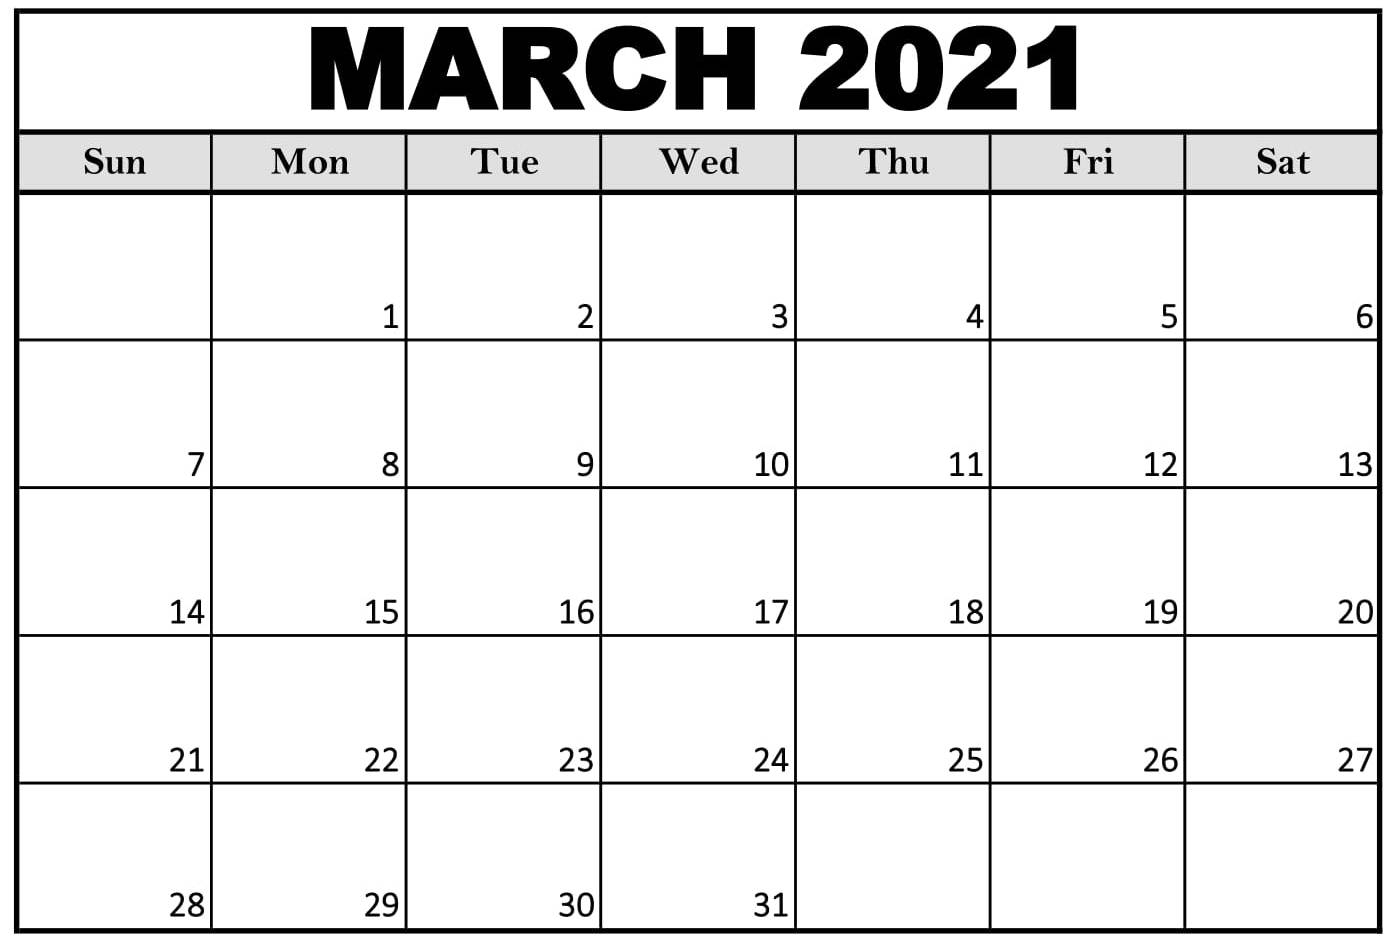 Free Printable Calendar 2021 March Monthly - Web Galaxy